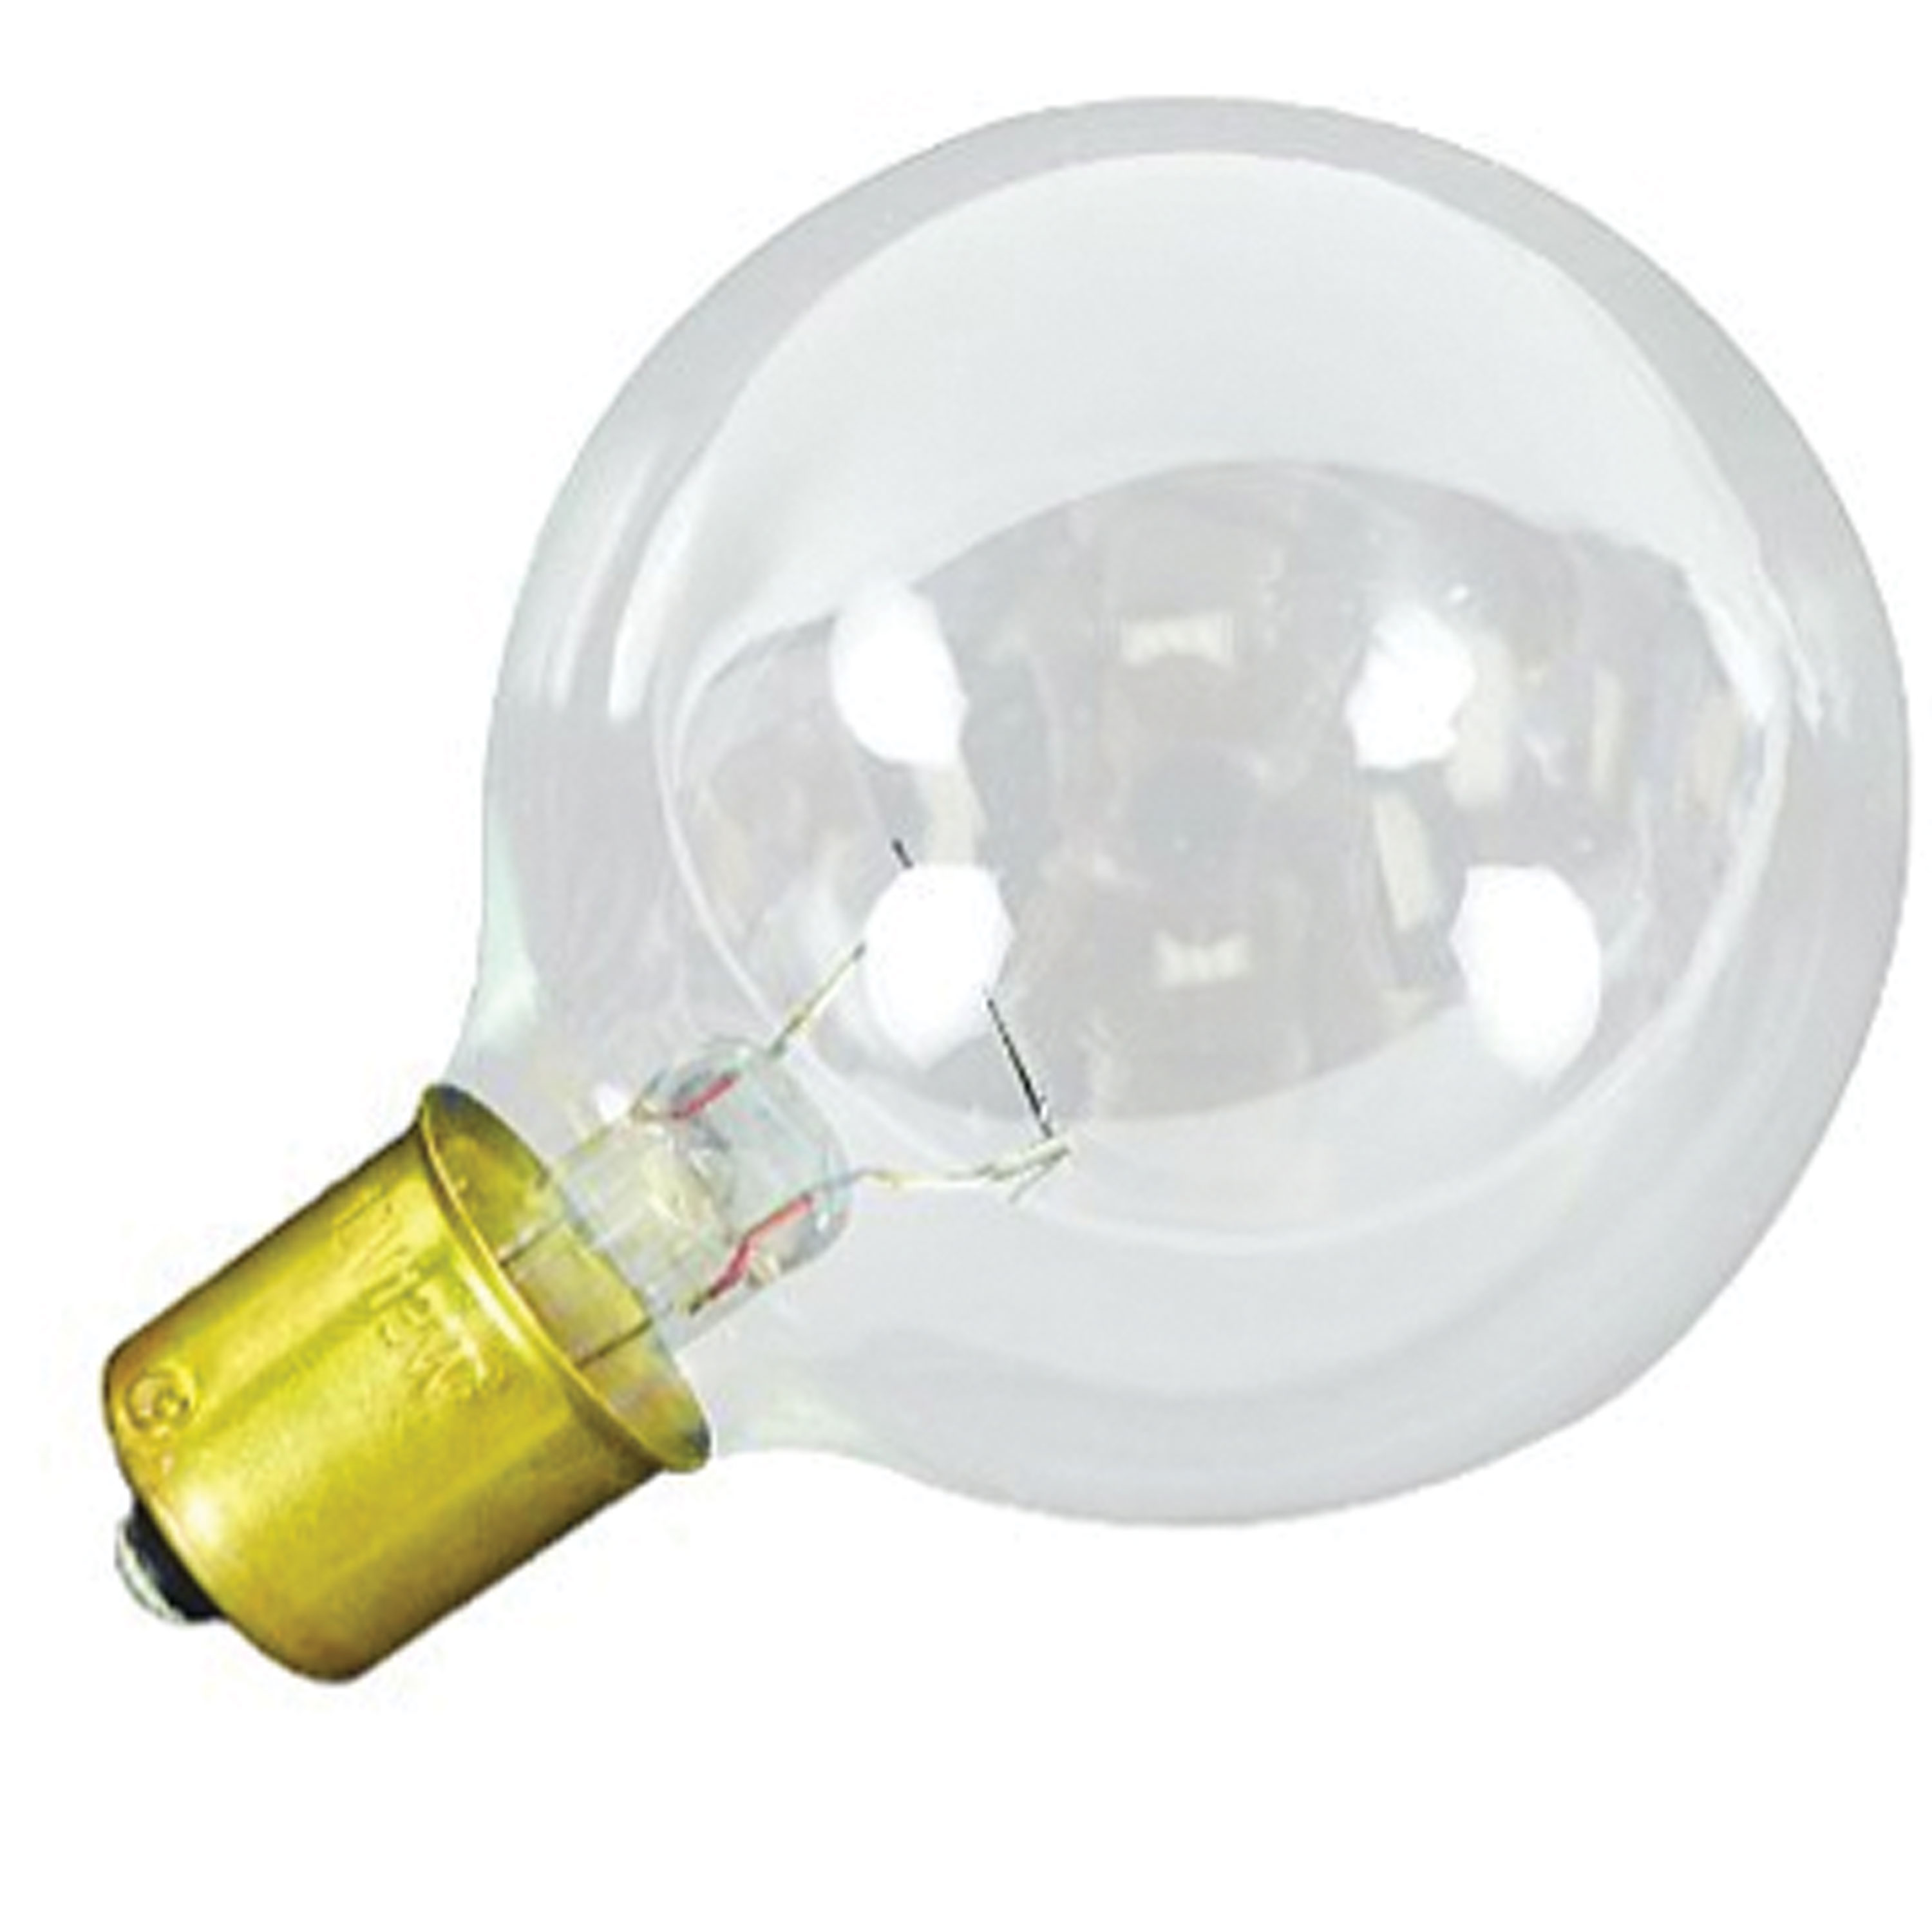 Camco 54709 RV Cosmetic Bulb #20-99 - Clear